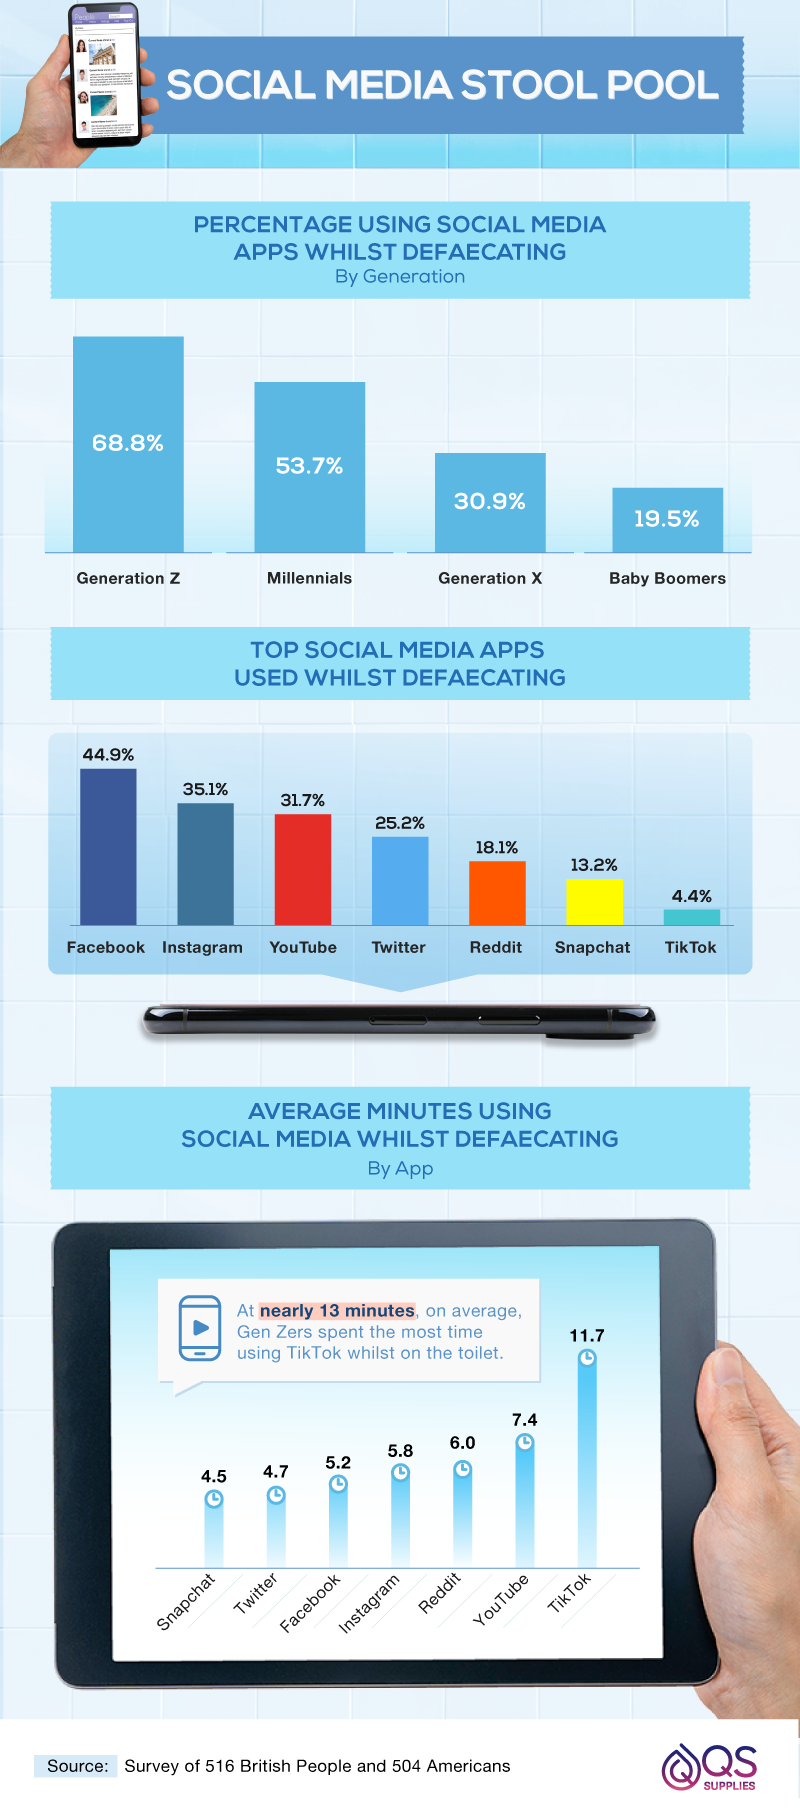 Percentages of social media apps used whilst defaecating.